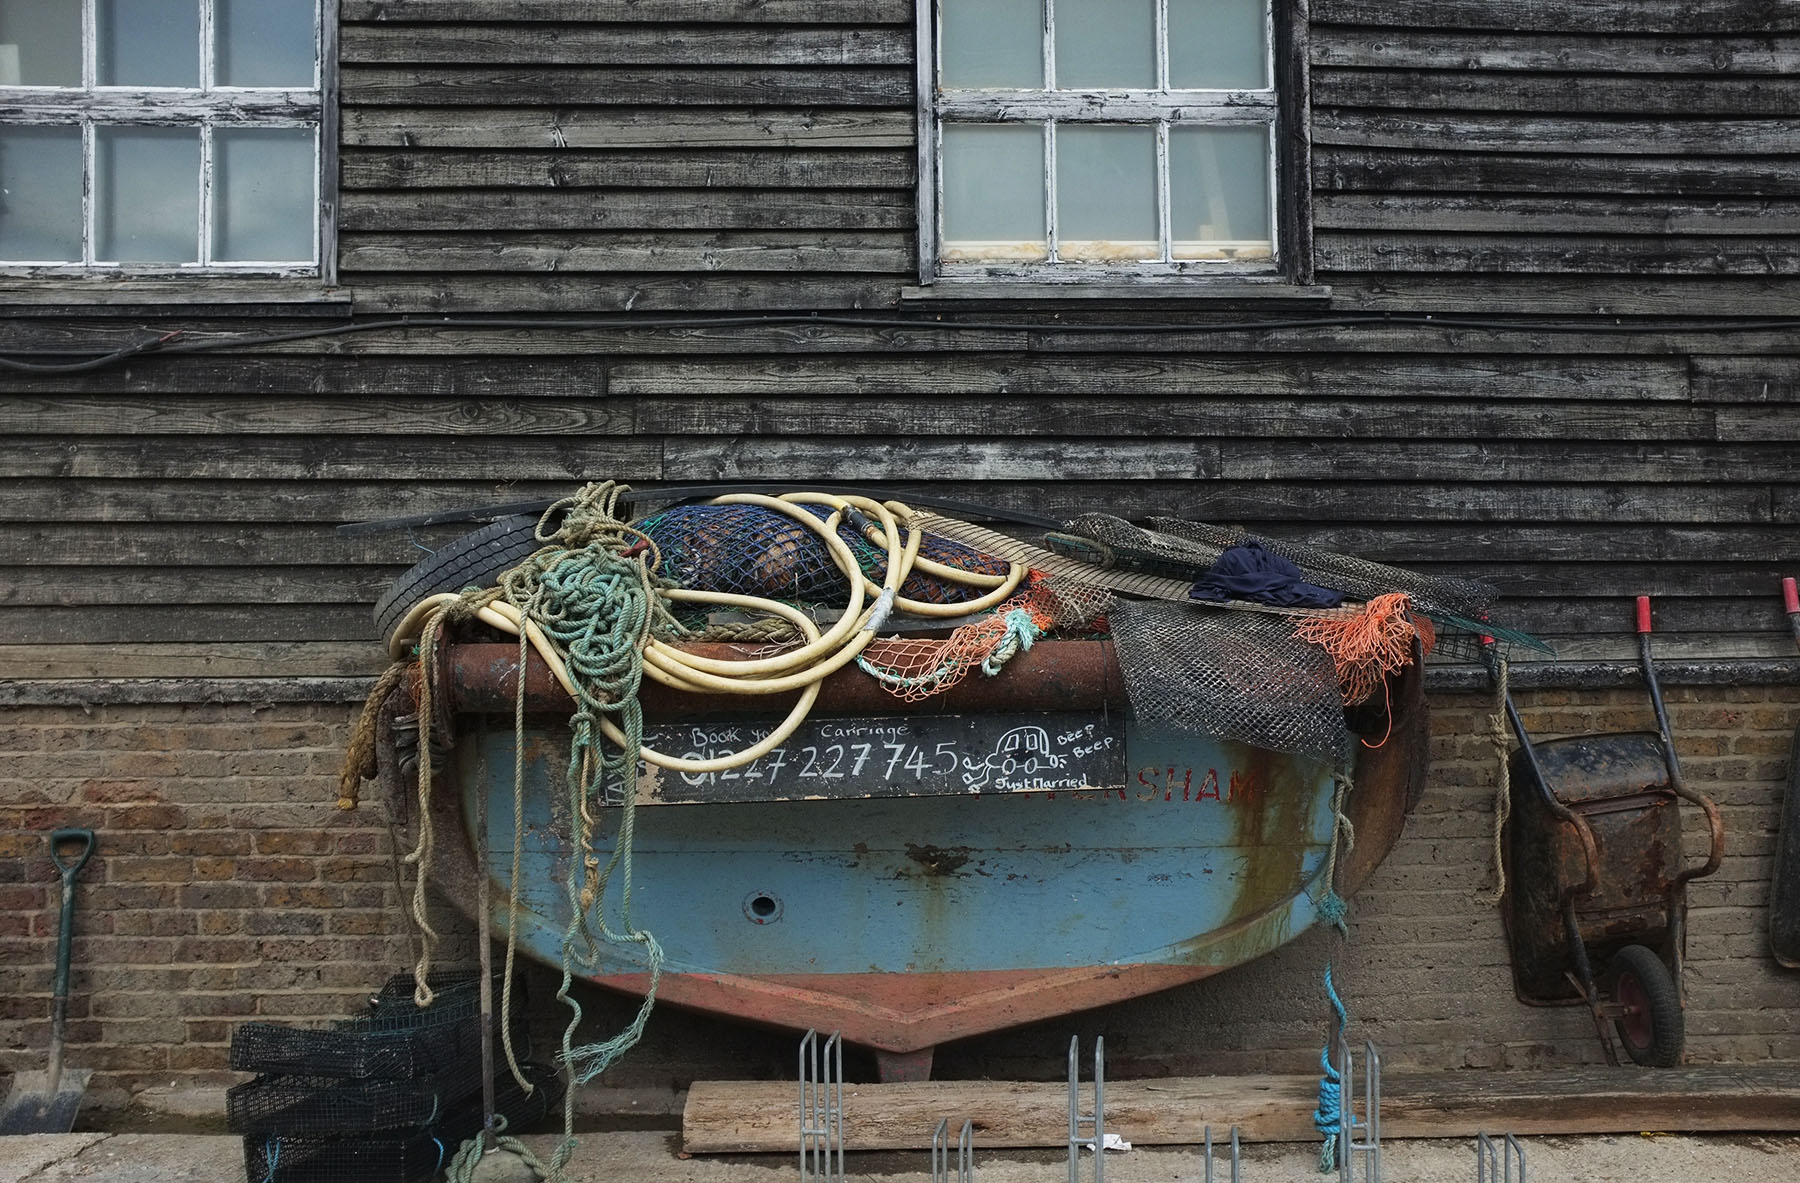 uk-whitstable_20